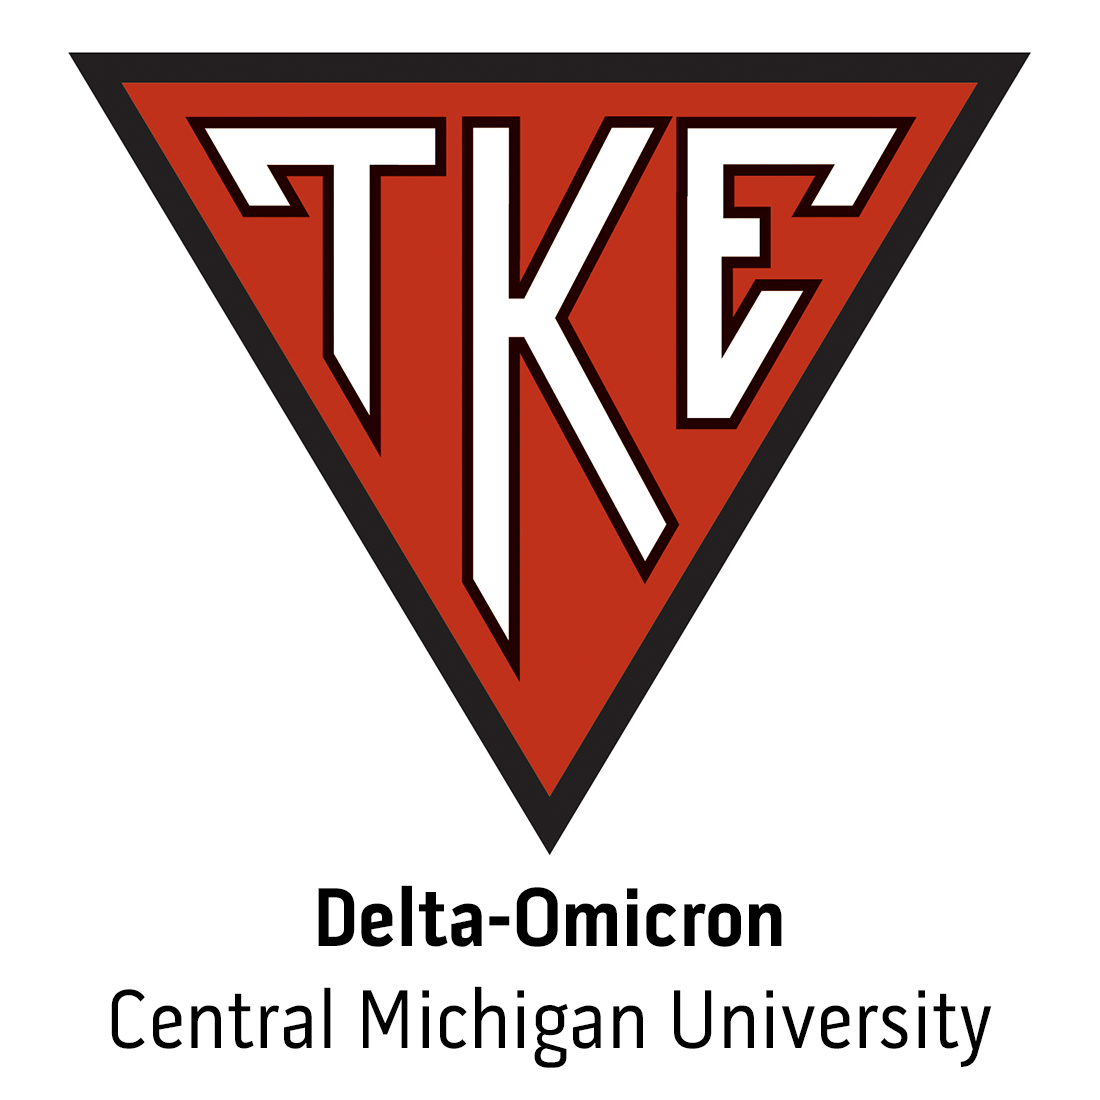 Delta-Omicron Colony at Central Michigan University